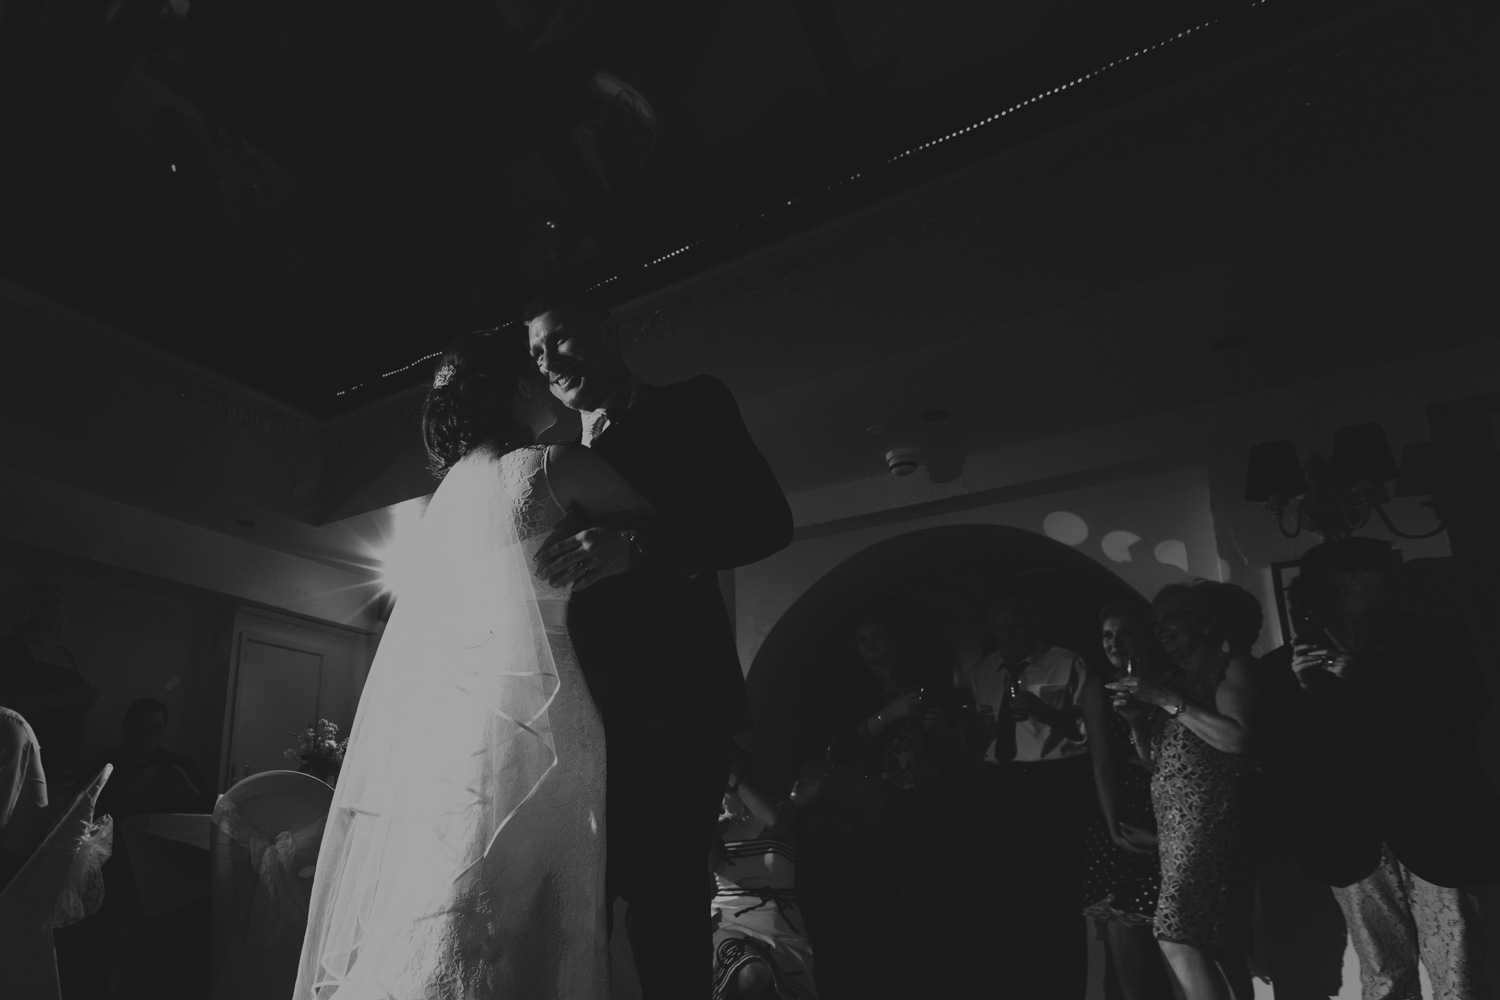 South-Wales-Wedding-Photographer-Mark-Barnes-Newport-The-old-barn-inn-Ginette-and-Lewis-blog-68.jpg